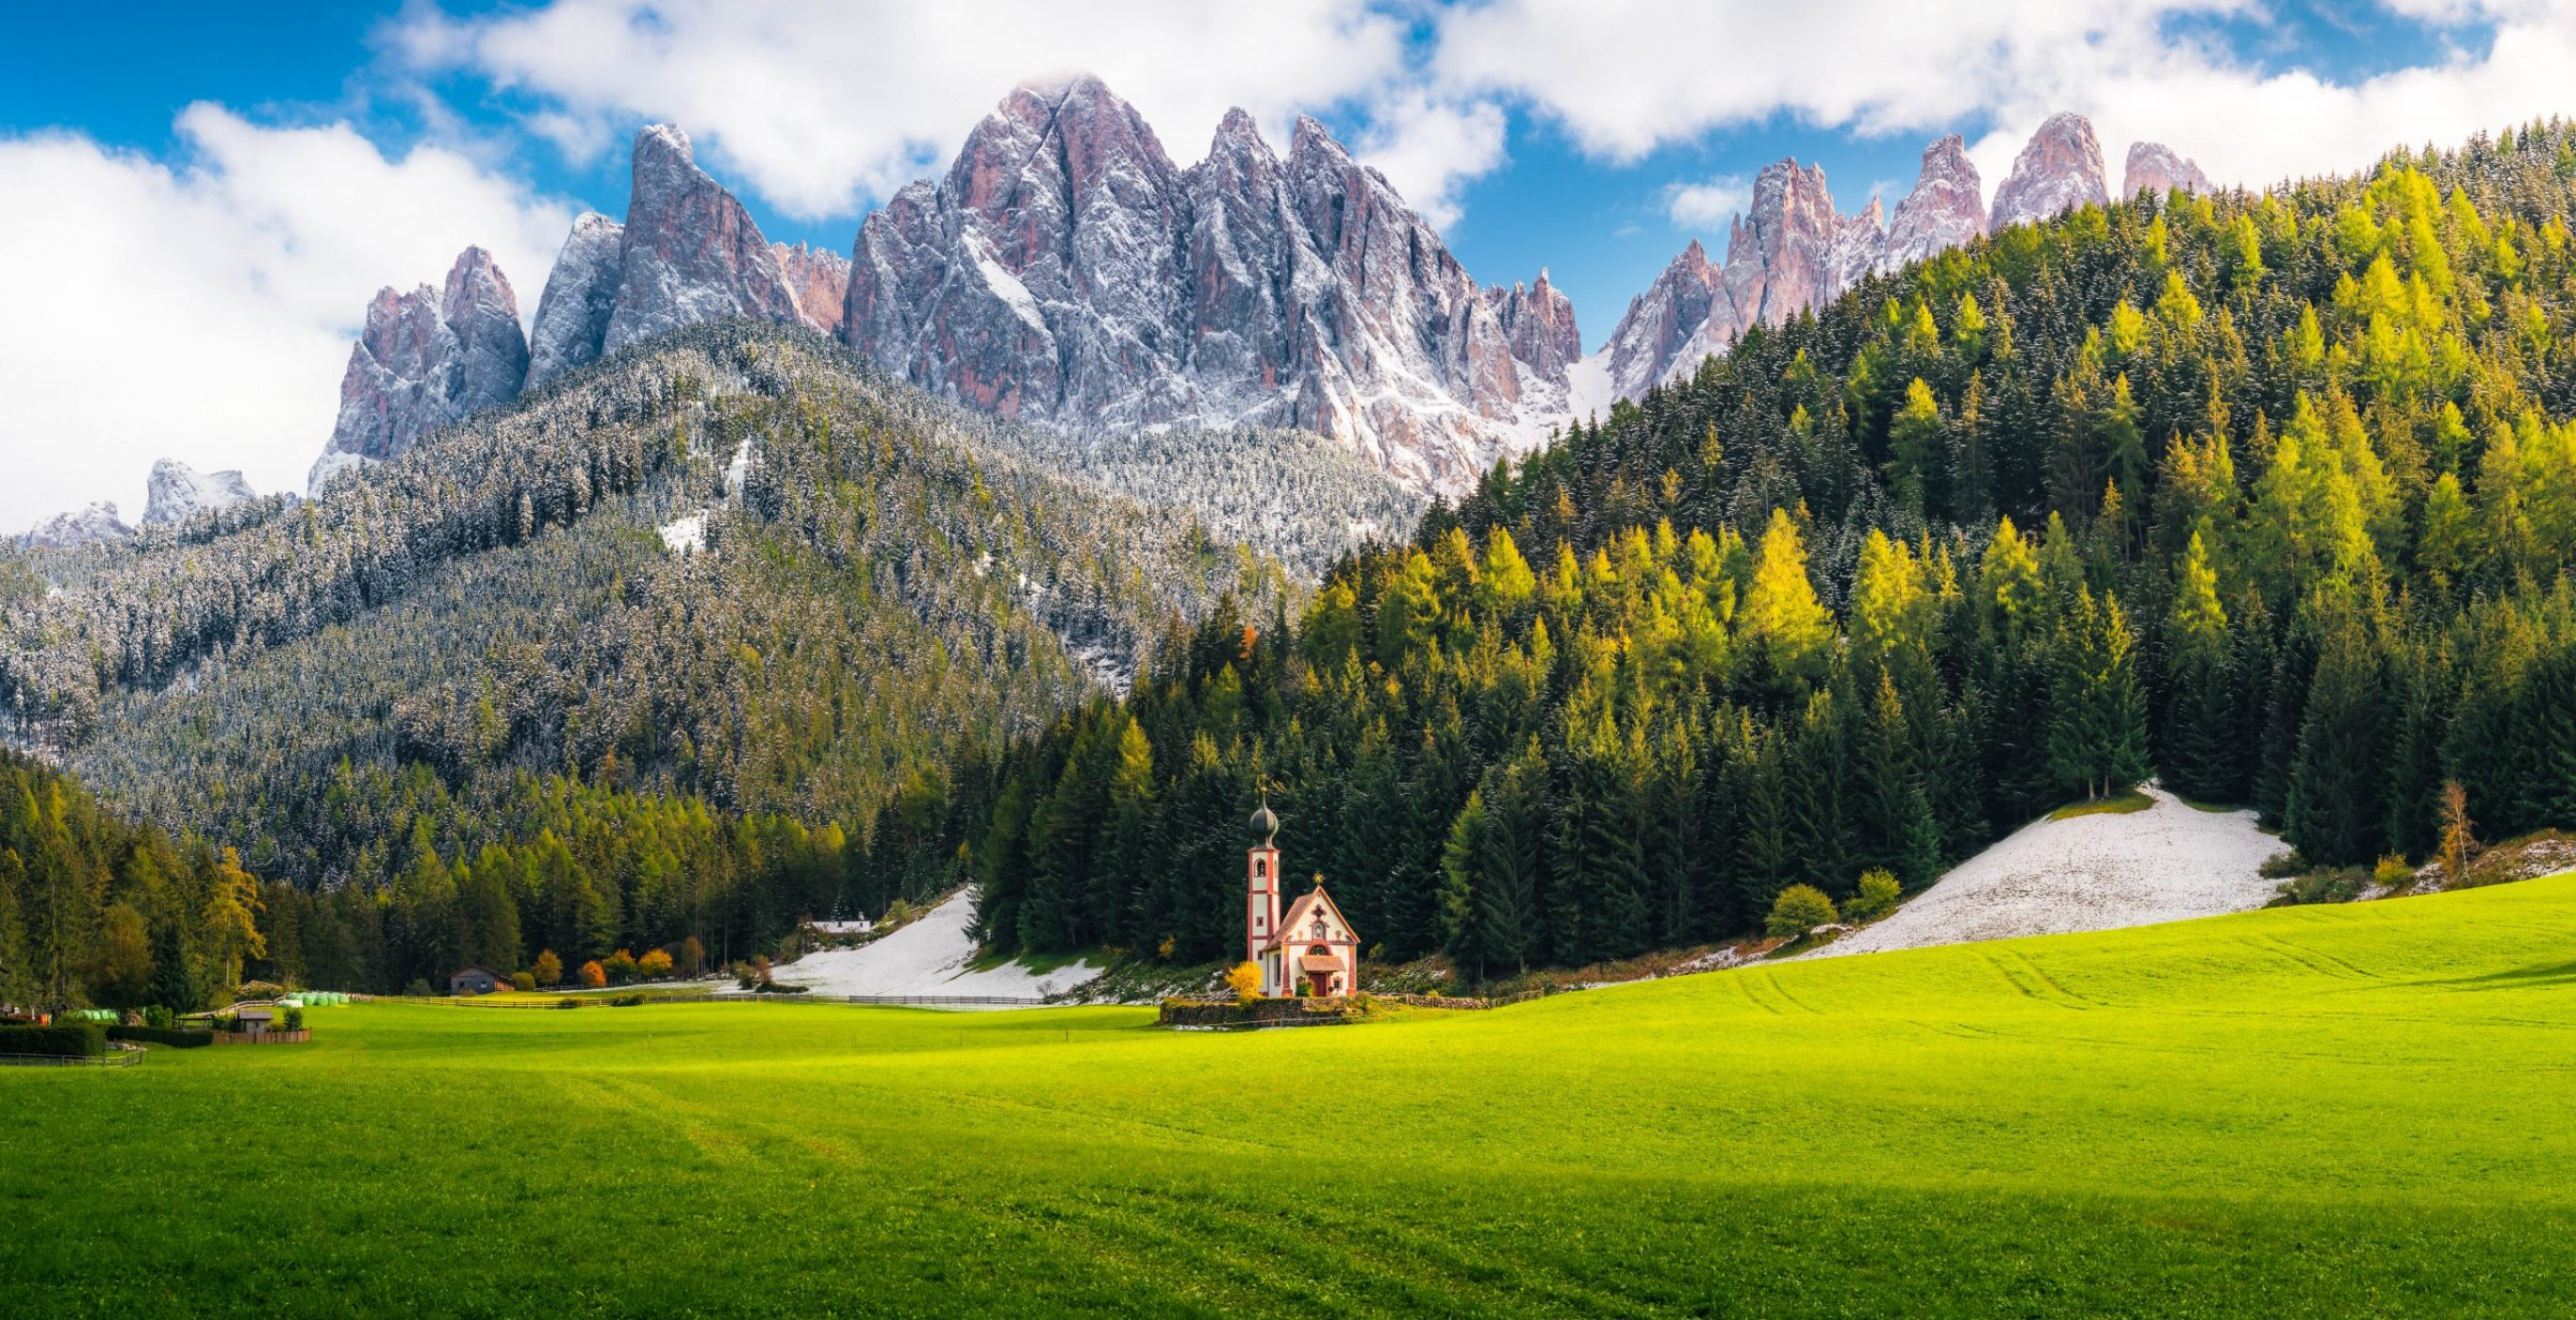 A little church stands in a green field backdropped by forest-clad slopes and jagged peaks beneath a cloudy sky, a featured image used in the article